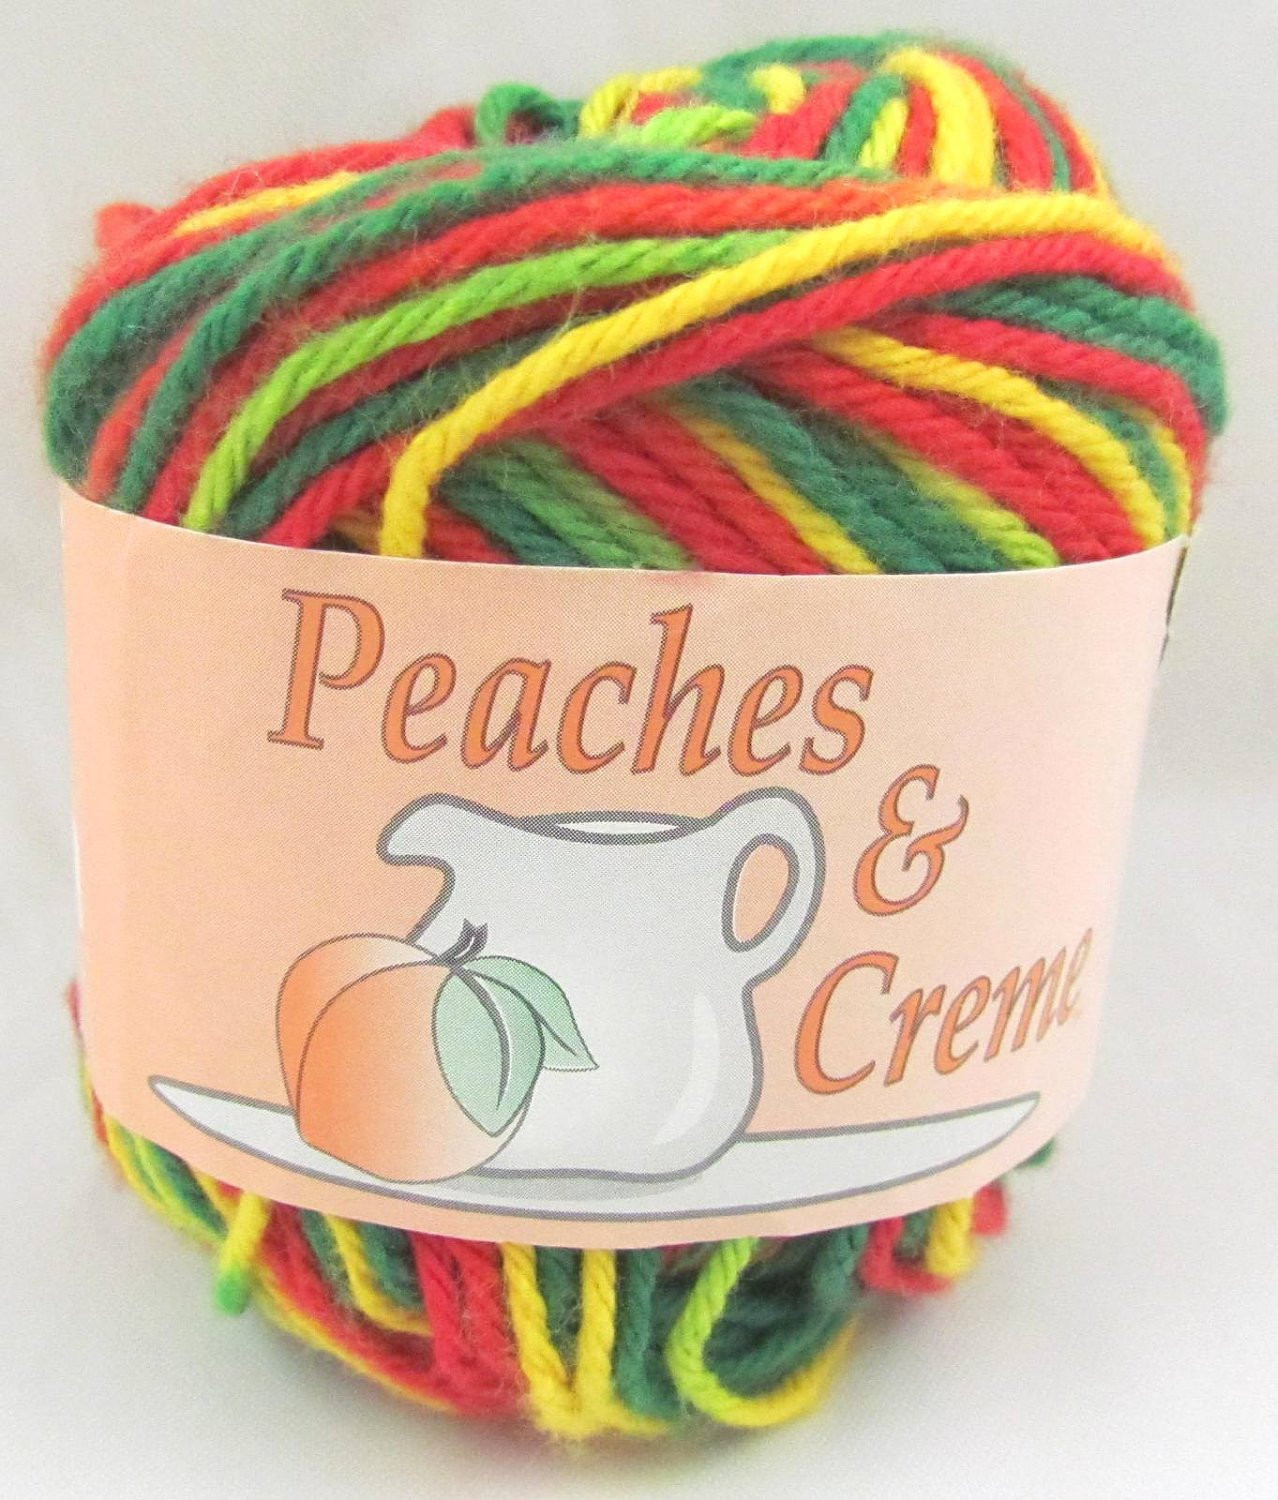 Peaches N Cream Yarn Unique Mexacali Peaches & Creme Yarn 1 Ball by Carolscabin On Etsy Of Awesome 41 Pictures Peaches N Cream Yarn